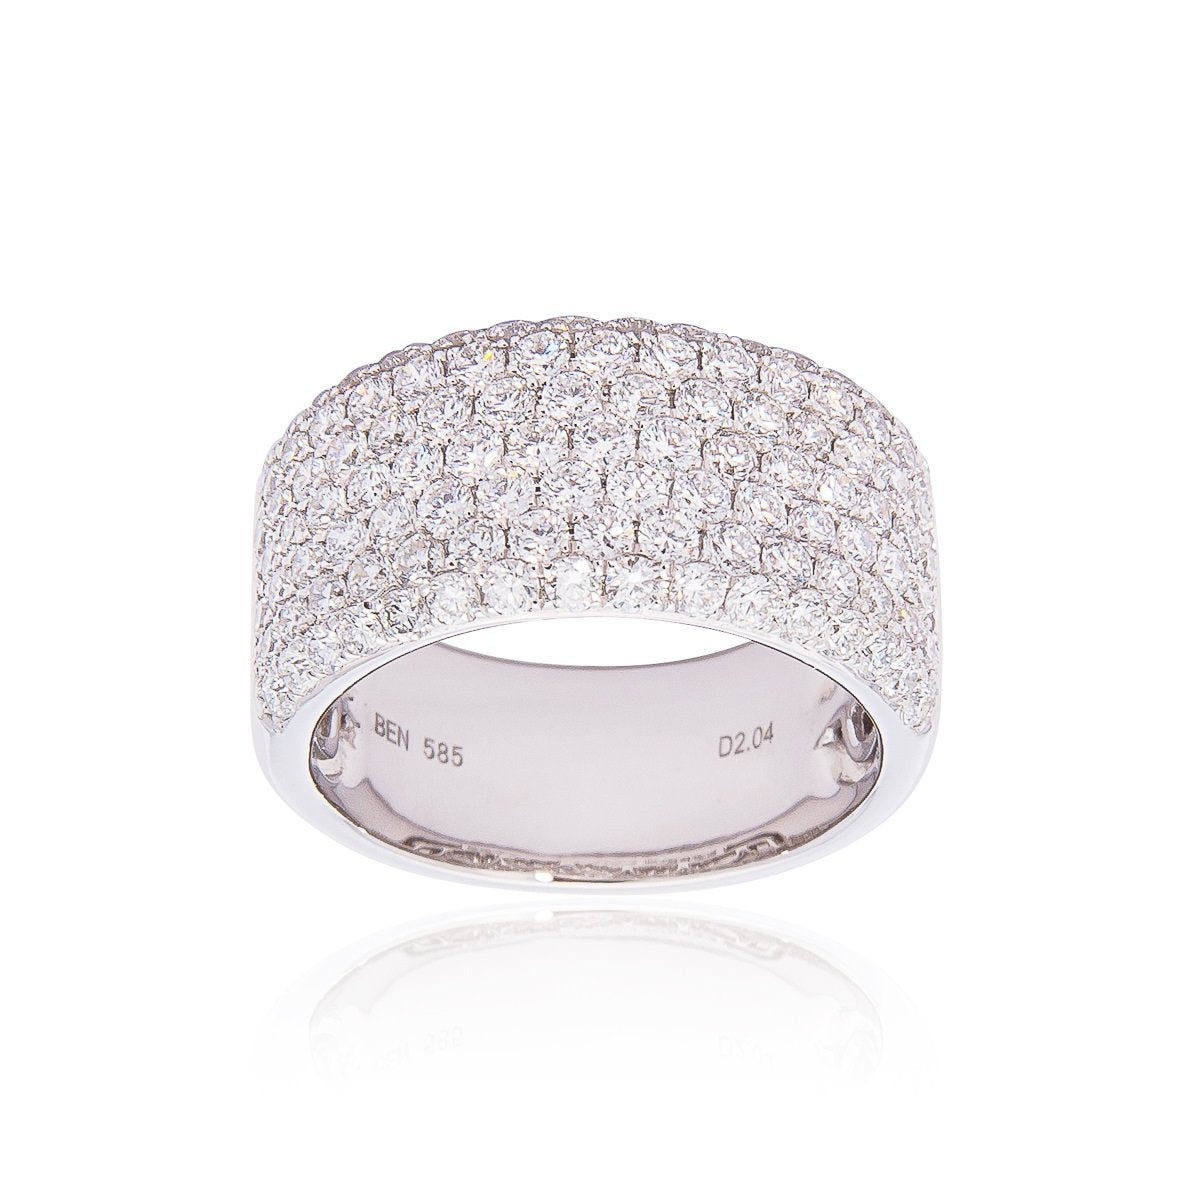 North Hills At Town Center: White Gold 2.04cttw Diamond Multi-Row Ring